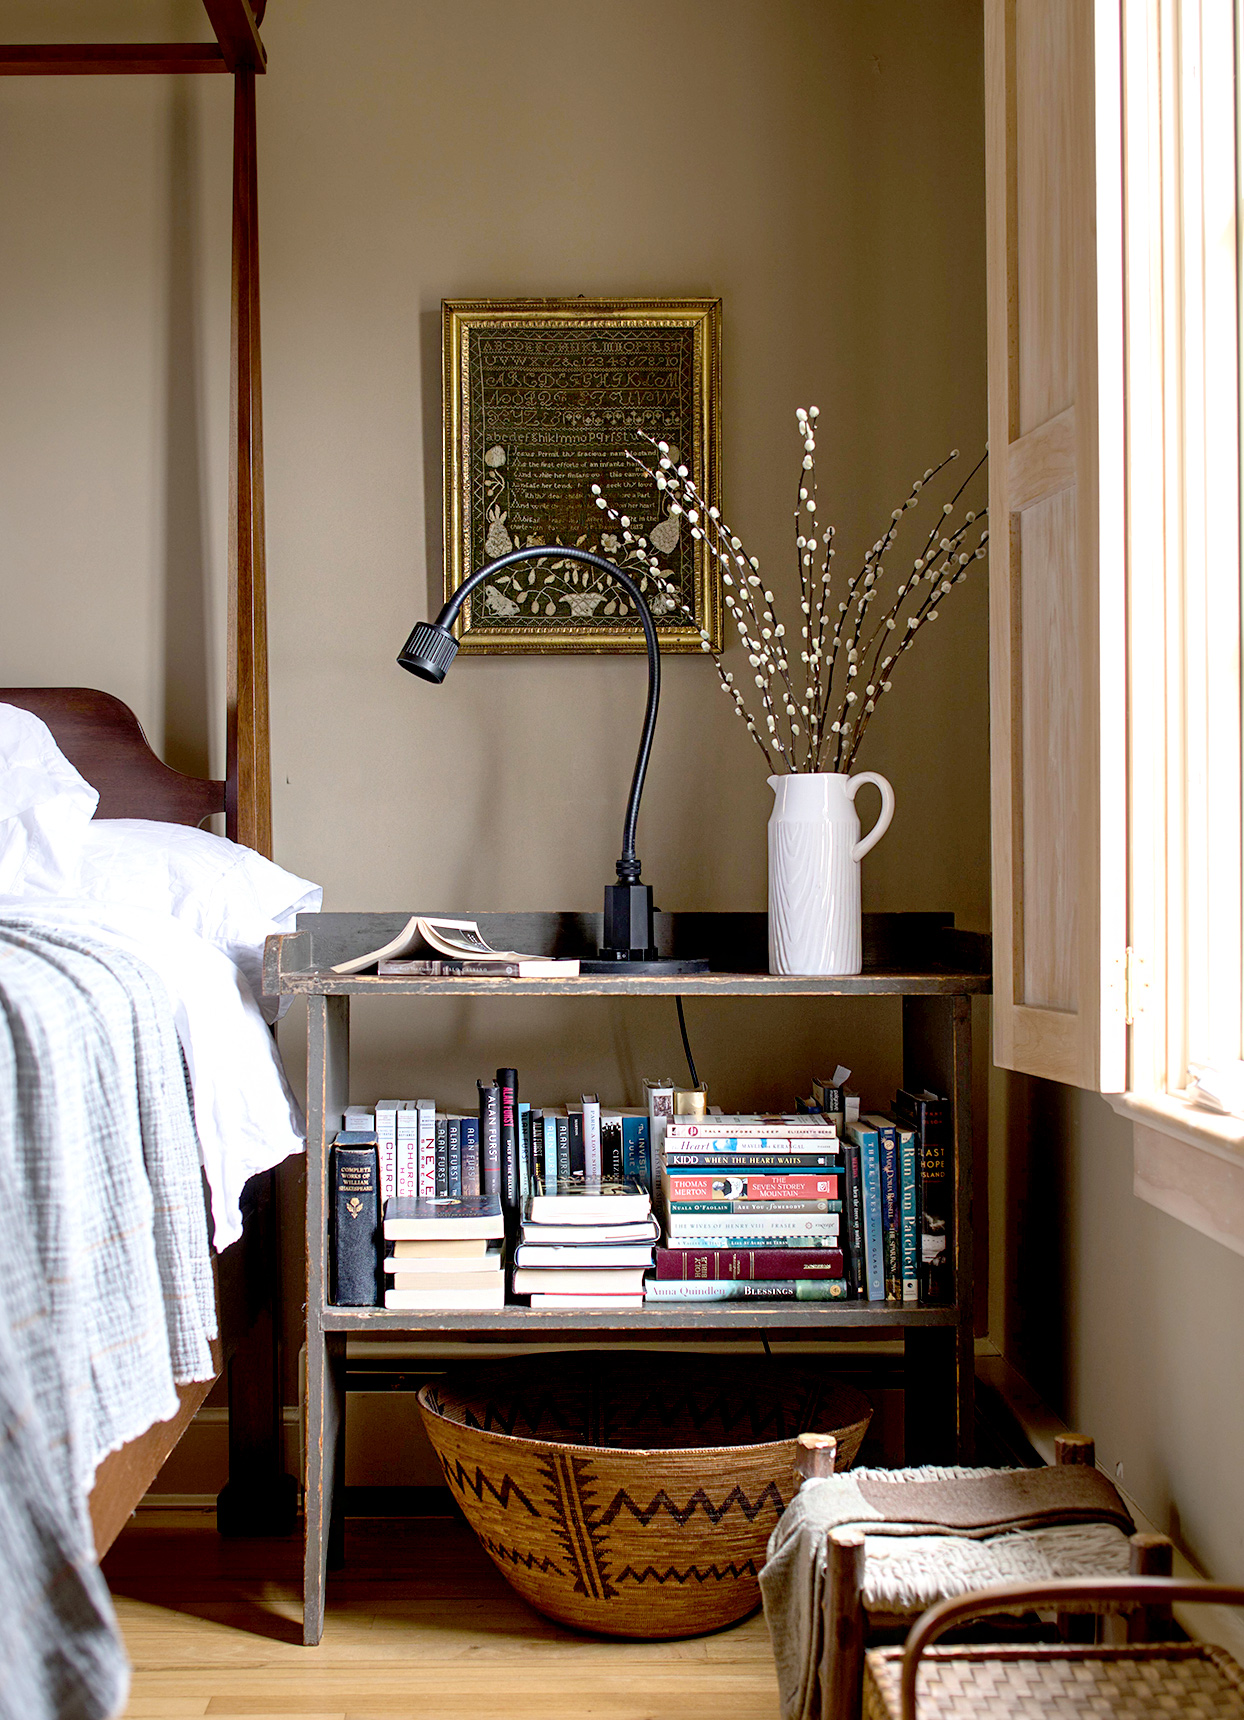 Corner of bedroom with nightstand shelf with books